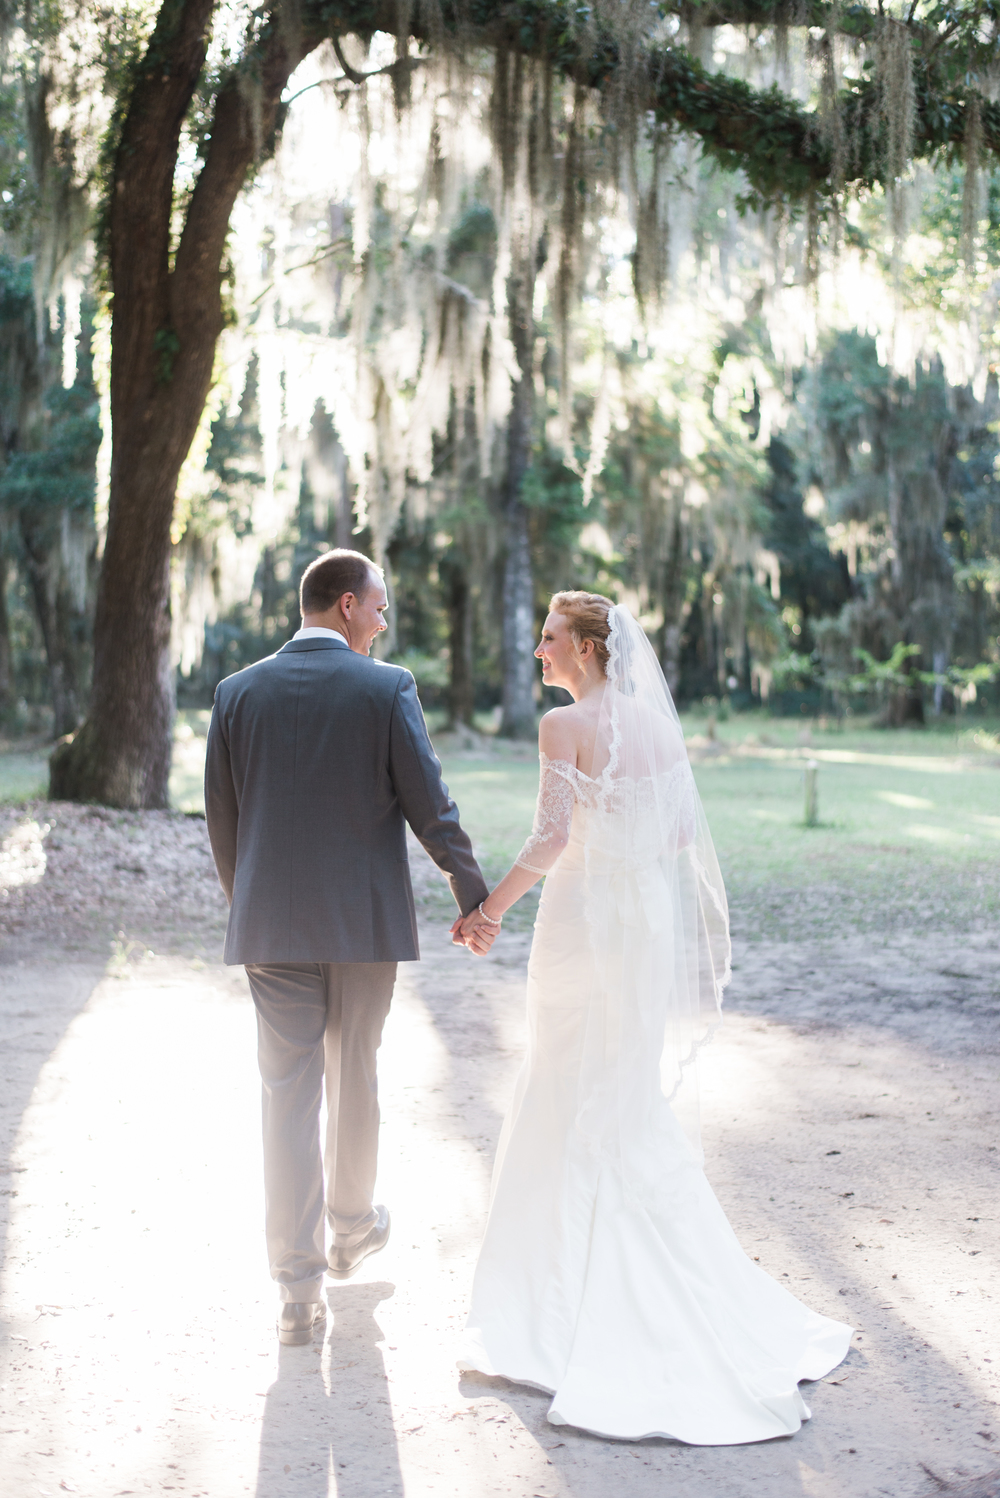 Southern Weddings on Daufuskie Island / cottagehillmag.com/journal/southern-weddings-on-daufuskie-island